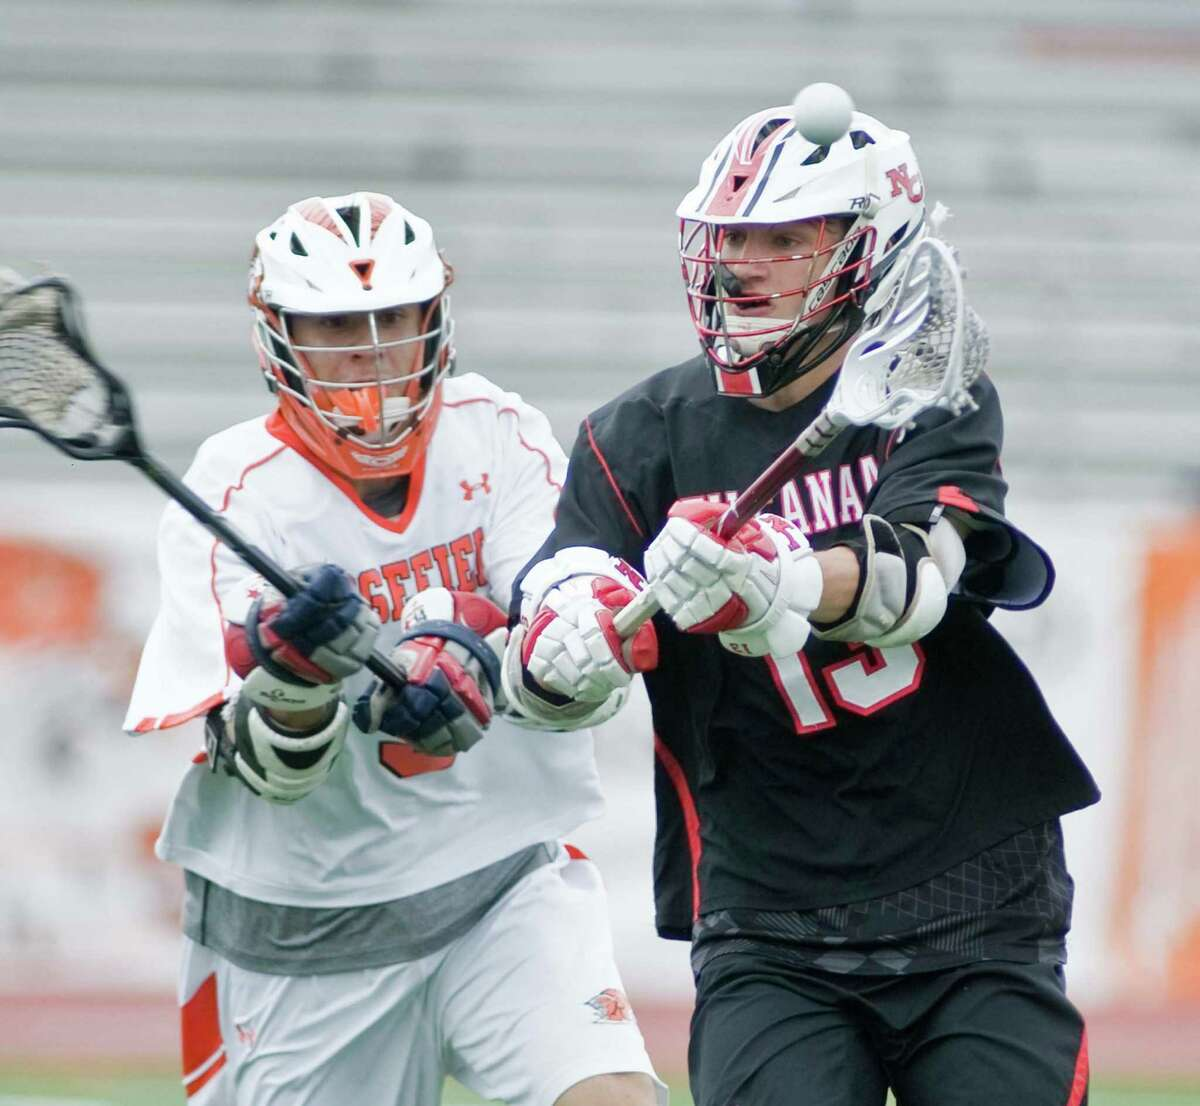 Ridgefield High School's William Carpenter tries to block the pass of New Canaan High School's Peter Swindell in the FCIAC boys lacrosse semifinal at Brien McMahon High School in Norwalk. Tuesday, May 24, 2016